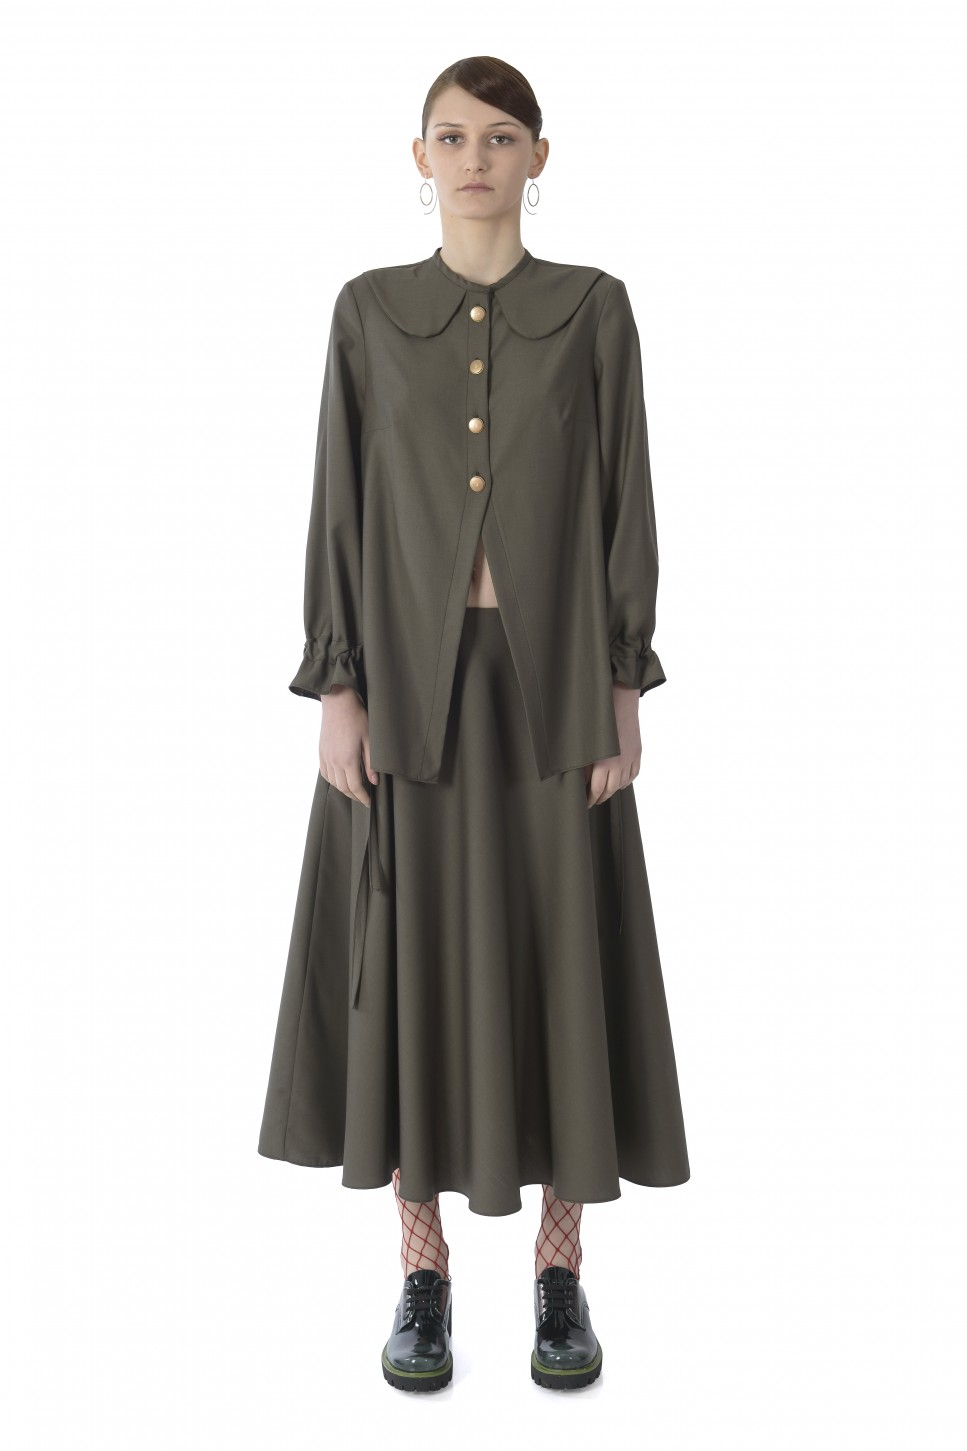 She buttoned up her shirt - Fay olive shirt